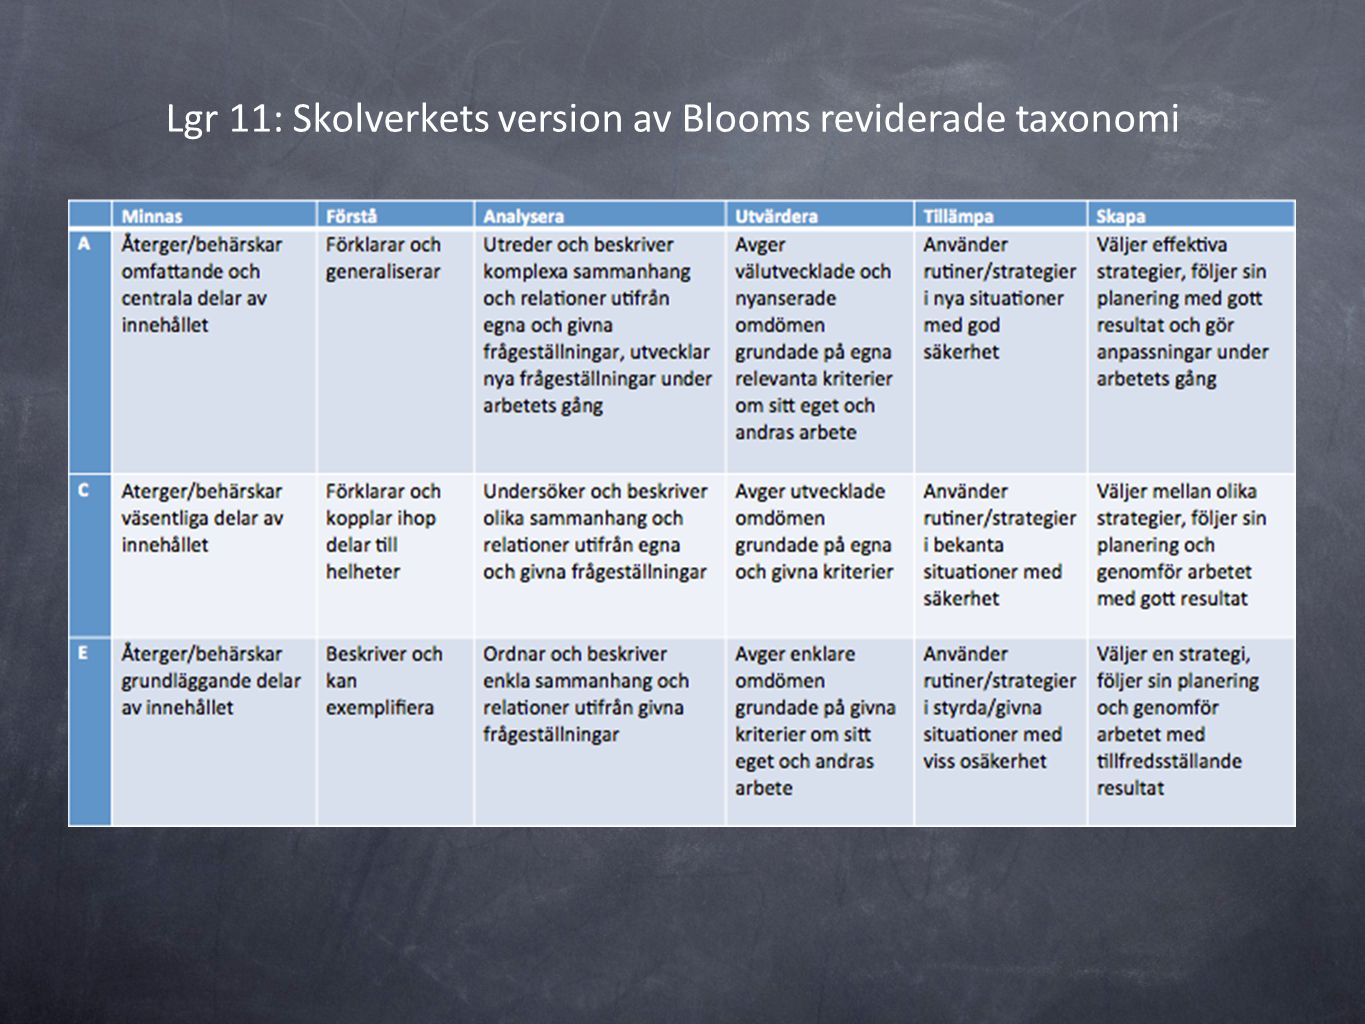 Lgr 11: Skolverkets version av Blooms reviderade taxonomi